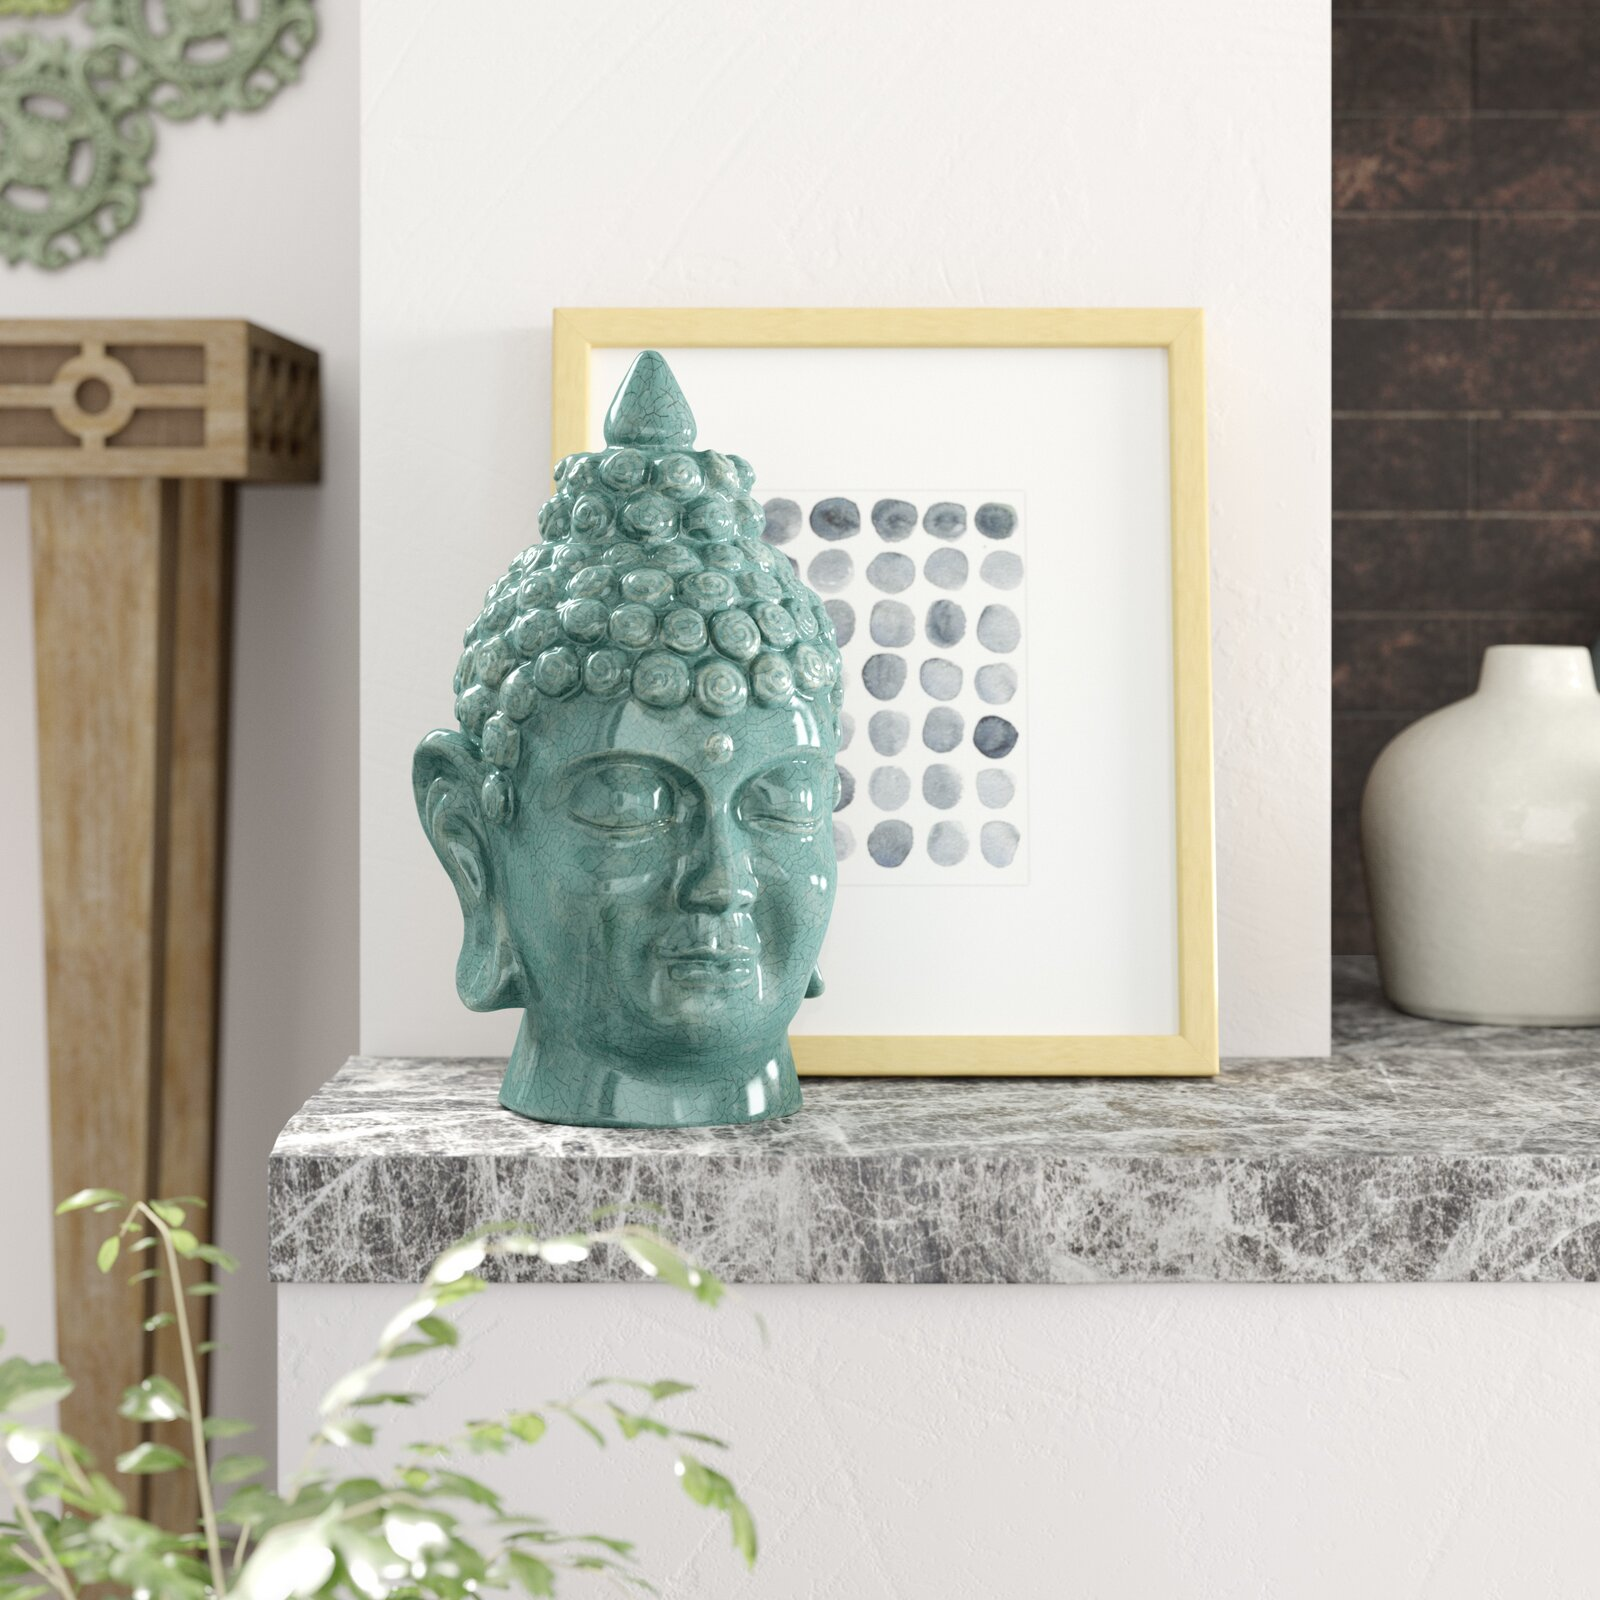 teal-buddha-head-statue-glossy-ceramic-sculpture-13-inch-height-modern-spiritual-decor-for-inner-peace-and-tranquility